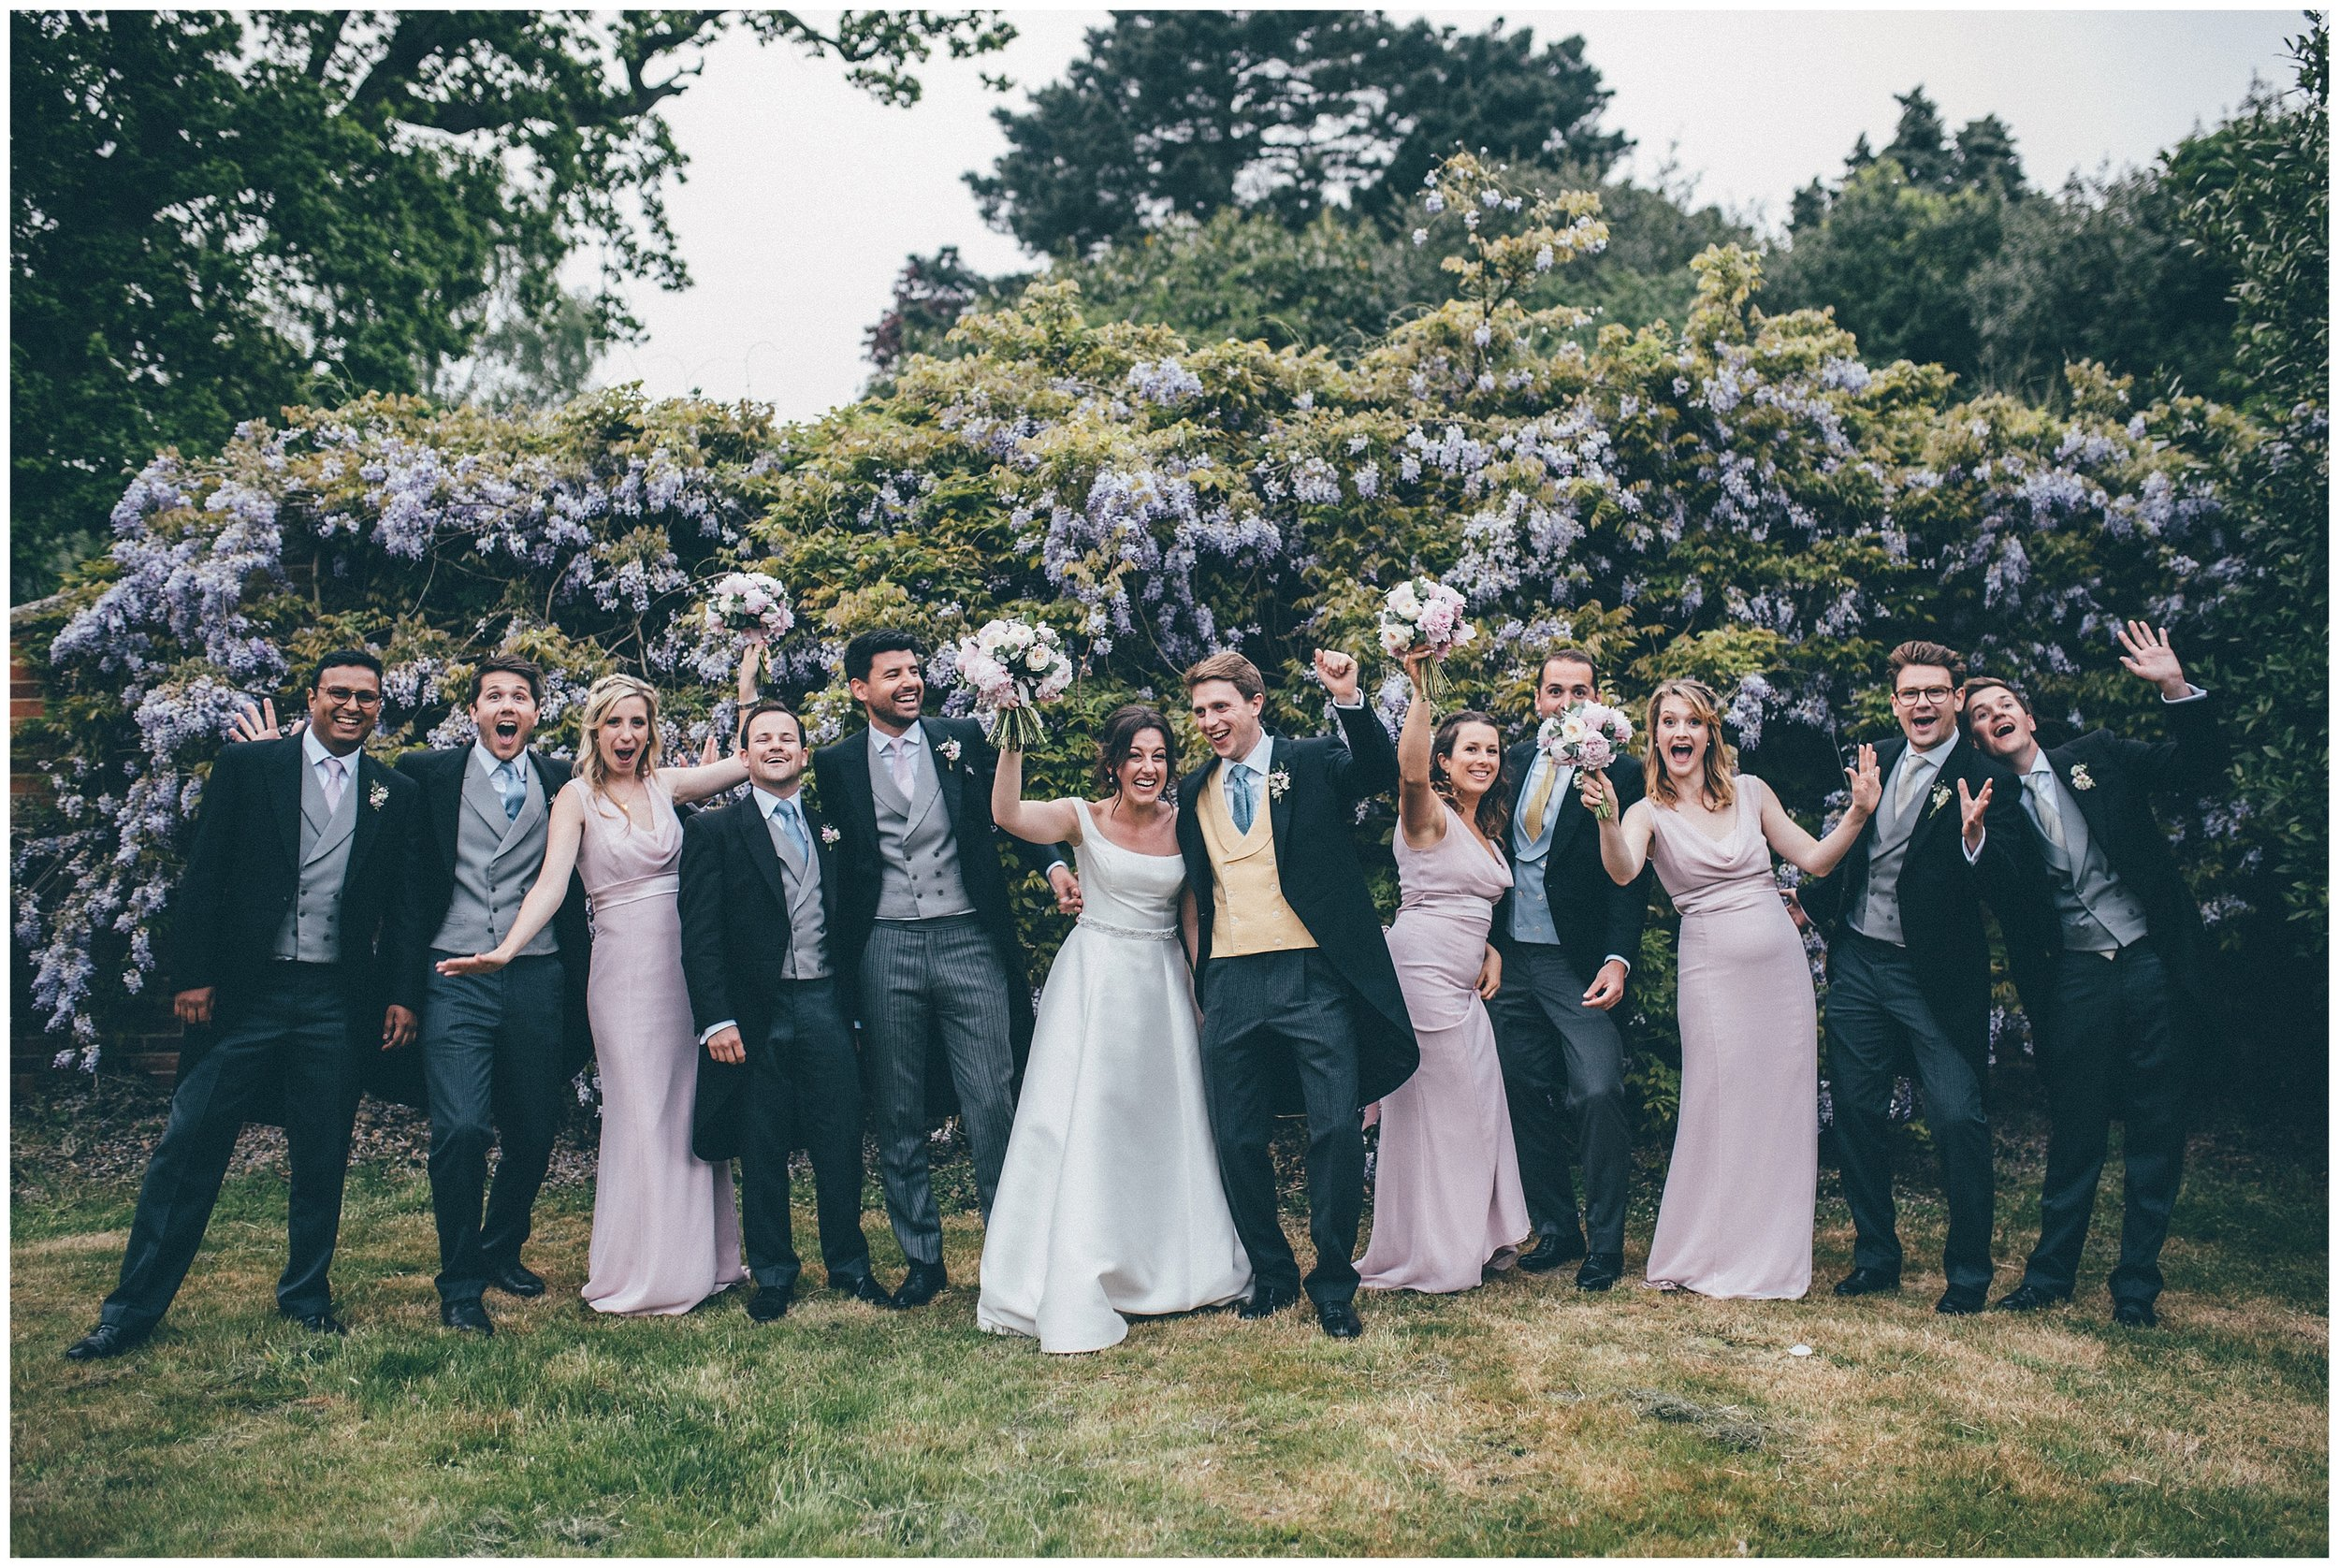 Bride and groom and their bridal party at Henham Park in Southwold.